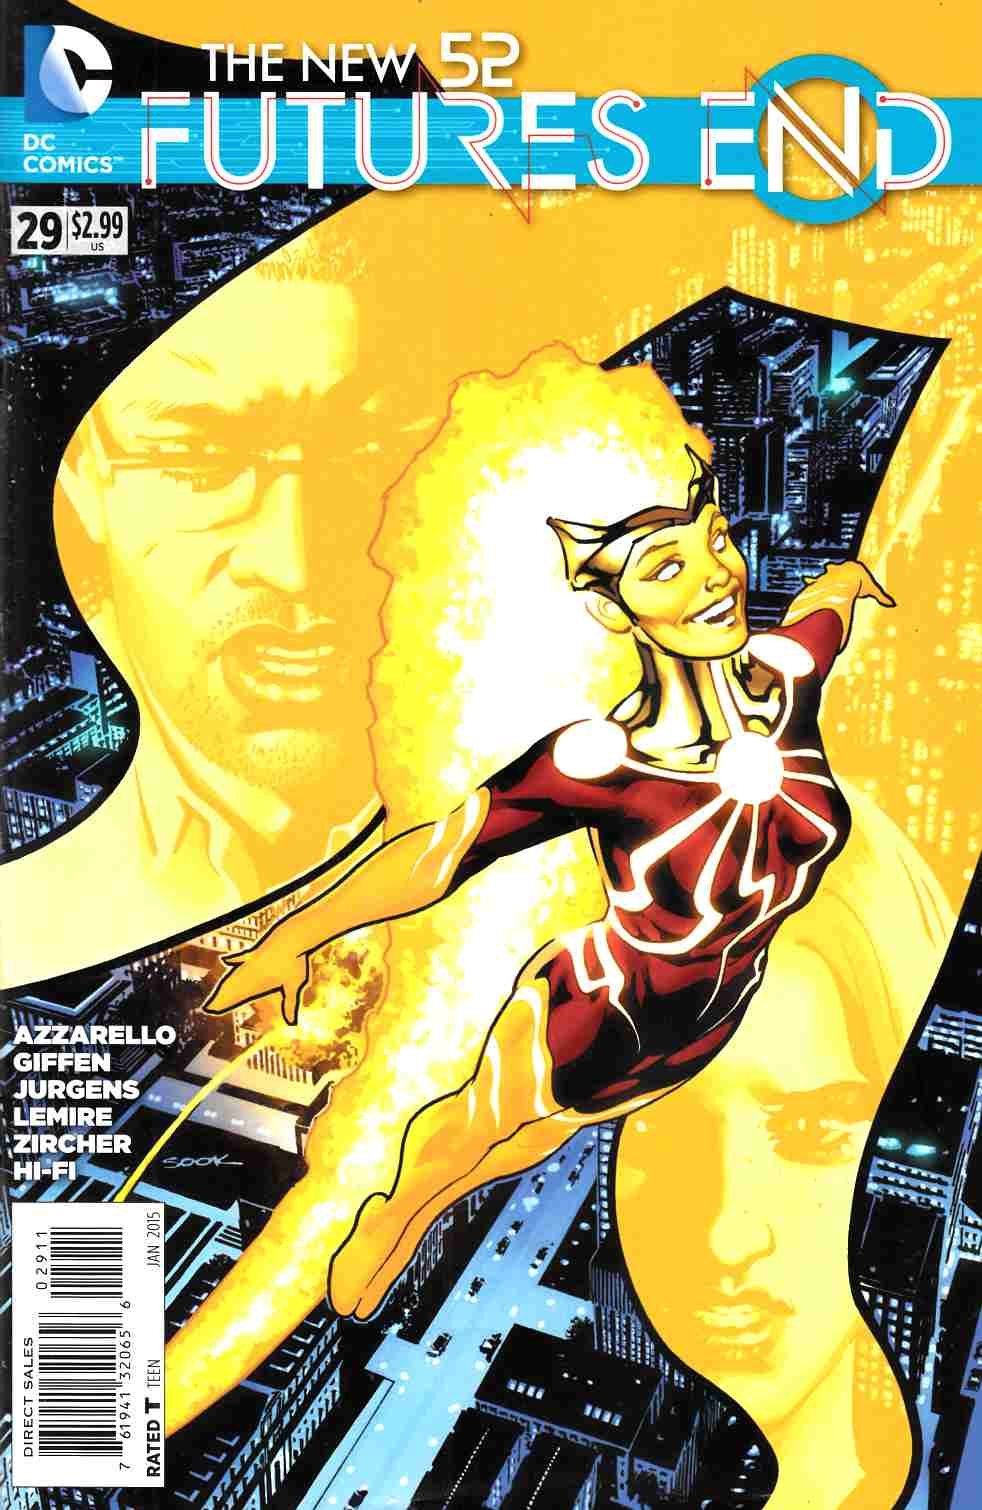 New 52 Futures End #29 (Weekly) [DC Comic] THUMBNAIL